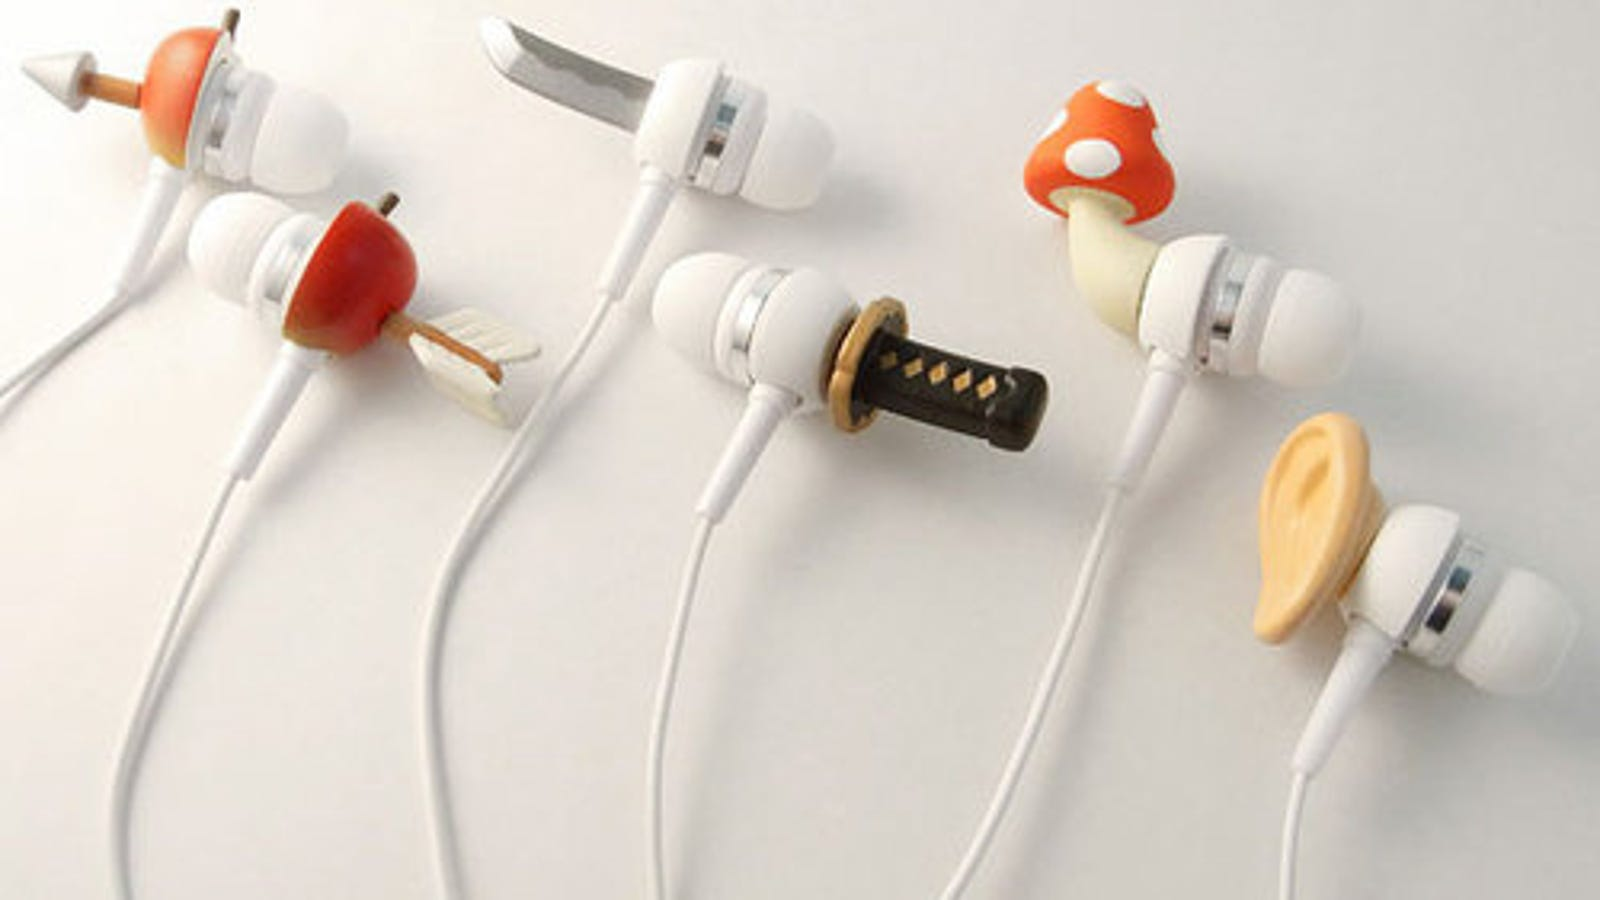 wireless headphones beats solo2 - Katana Earbuds Show the World How I Feel When I Listen to LFO